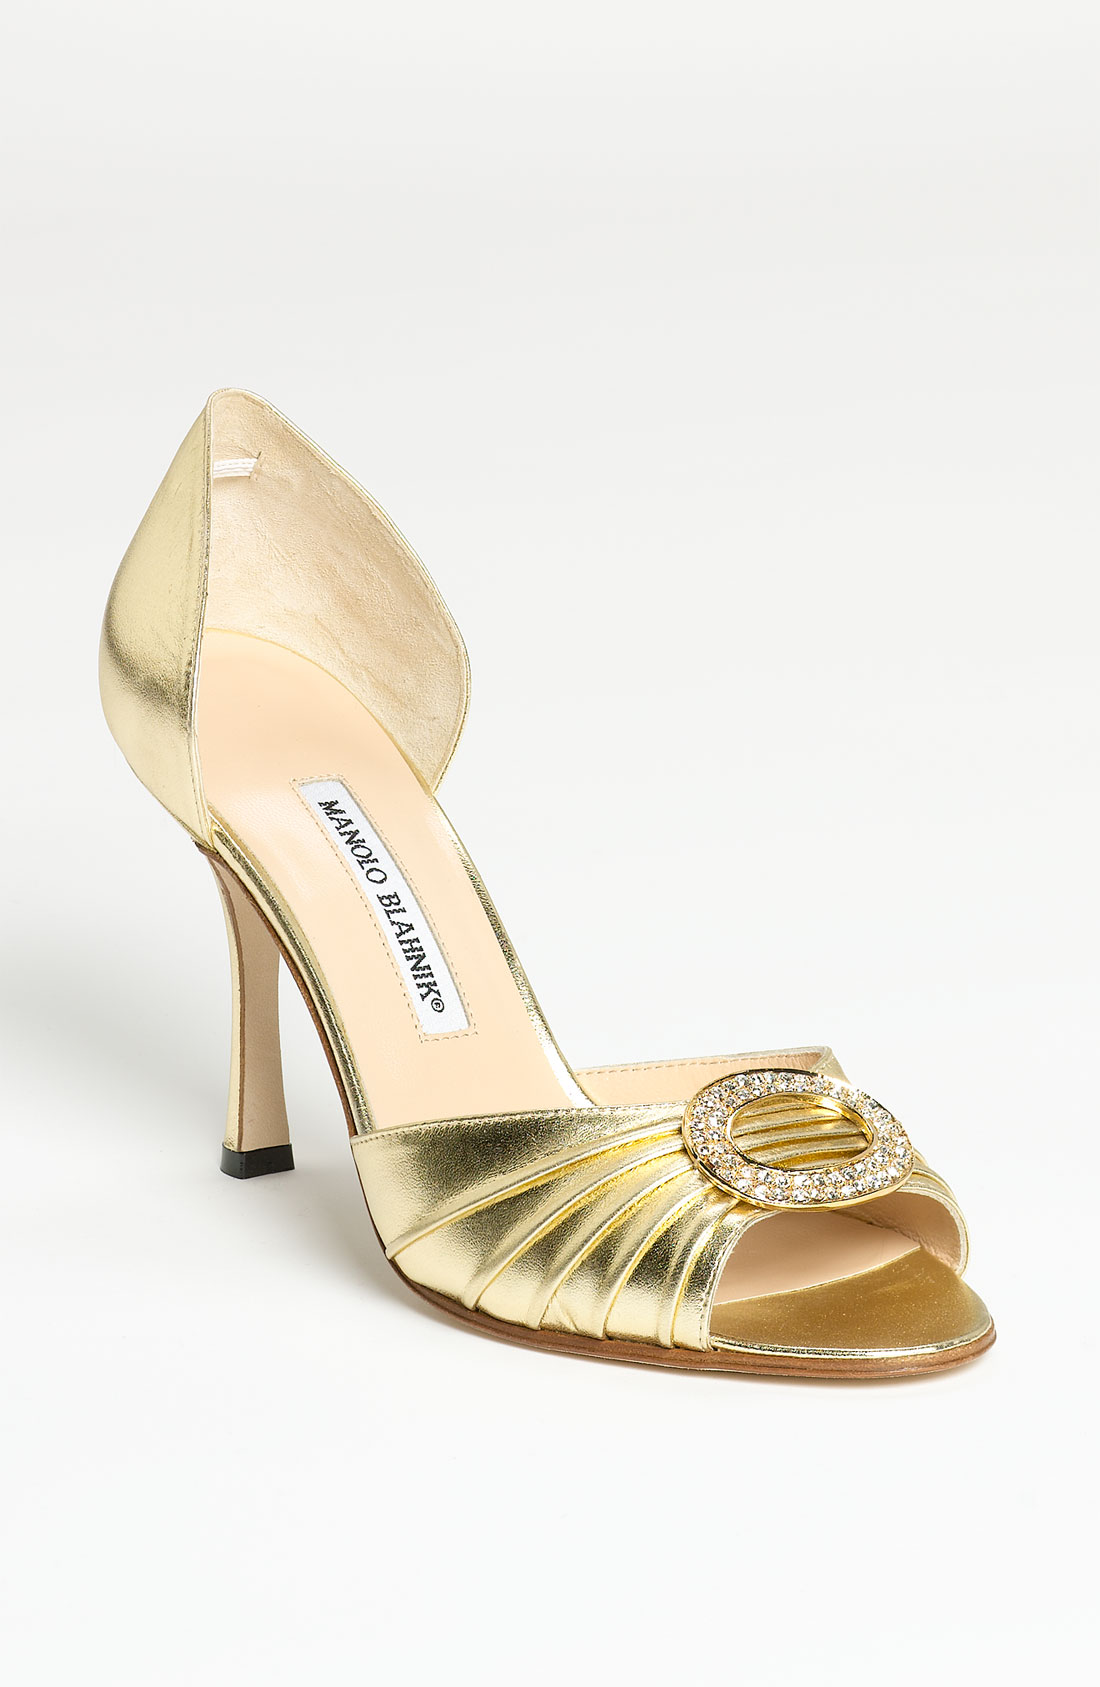 Shoeniverse: Manolo Blahnik Sedaraby d'orsay pumps in gold